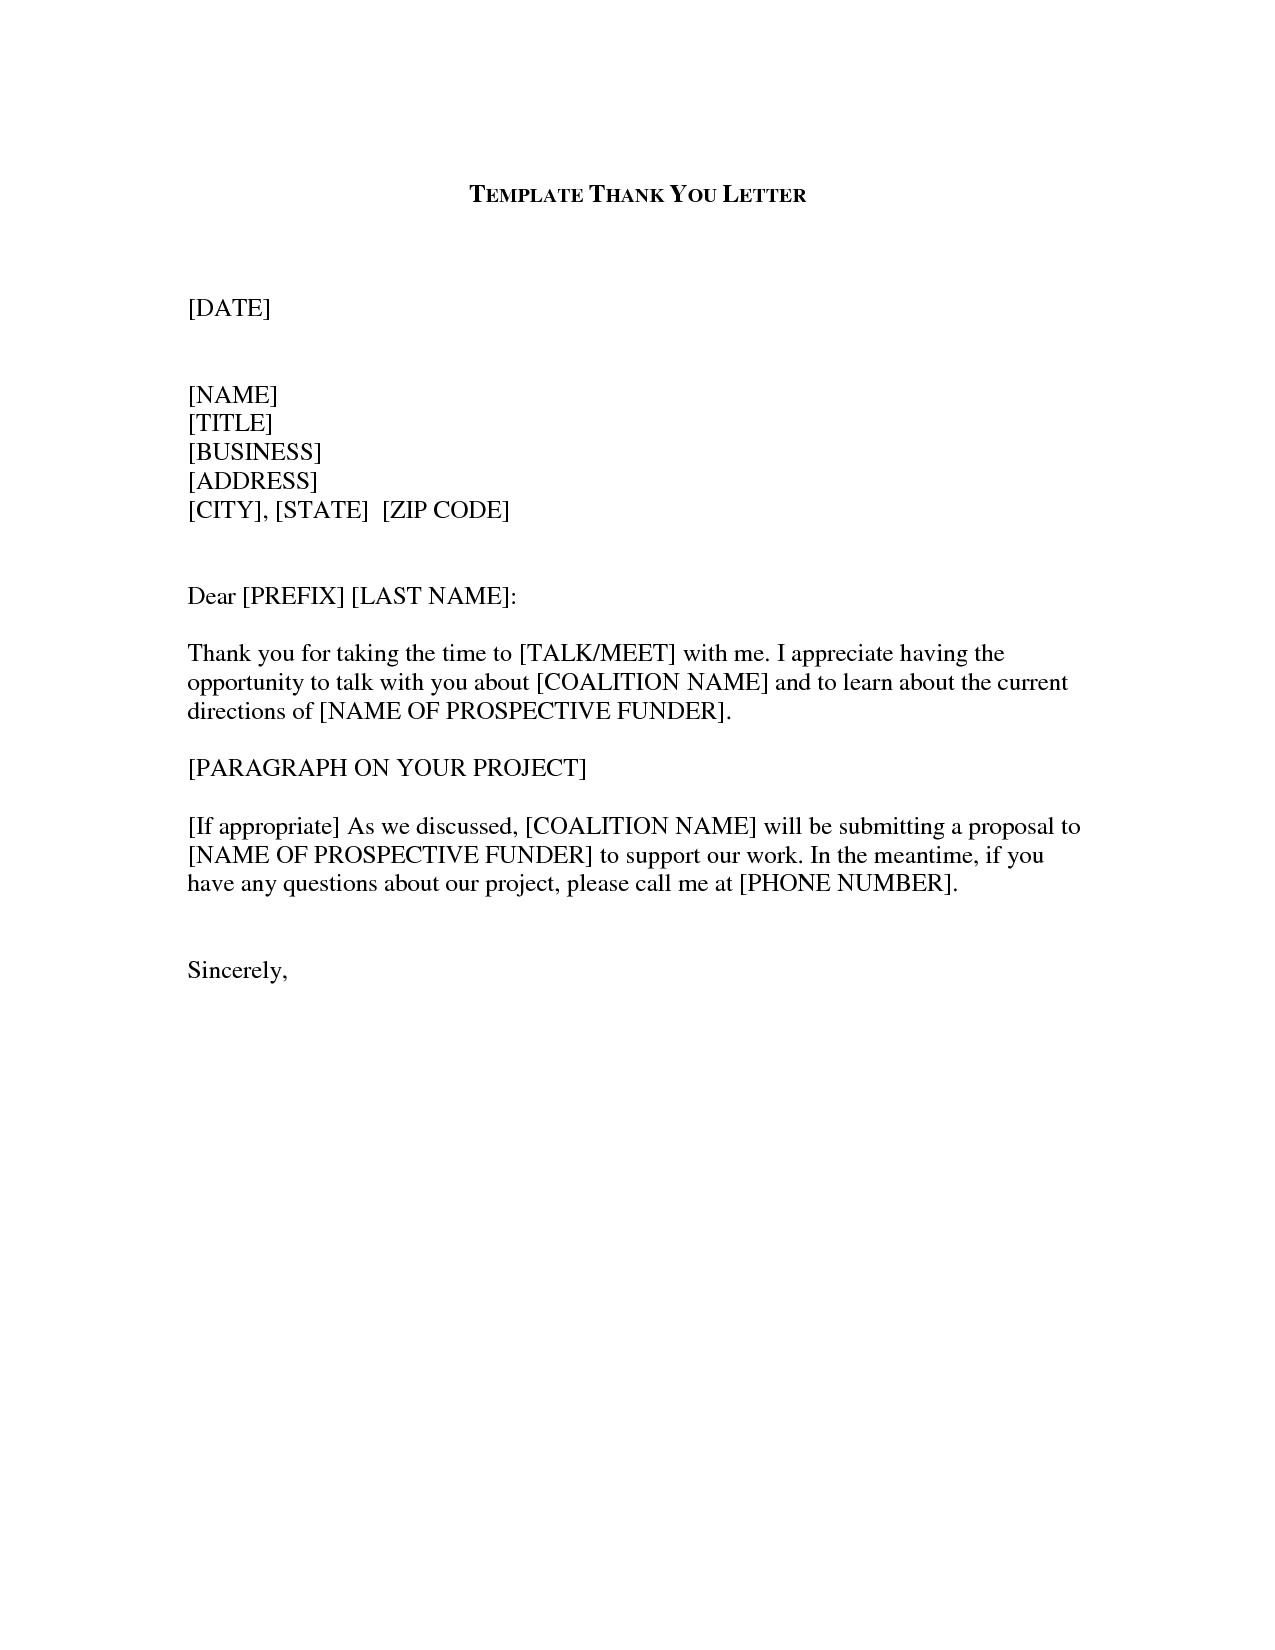 Thank You Letter Format | Business Letter Thank You Scrumps